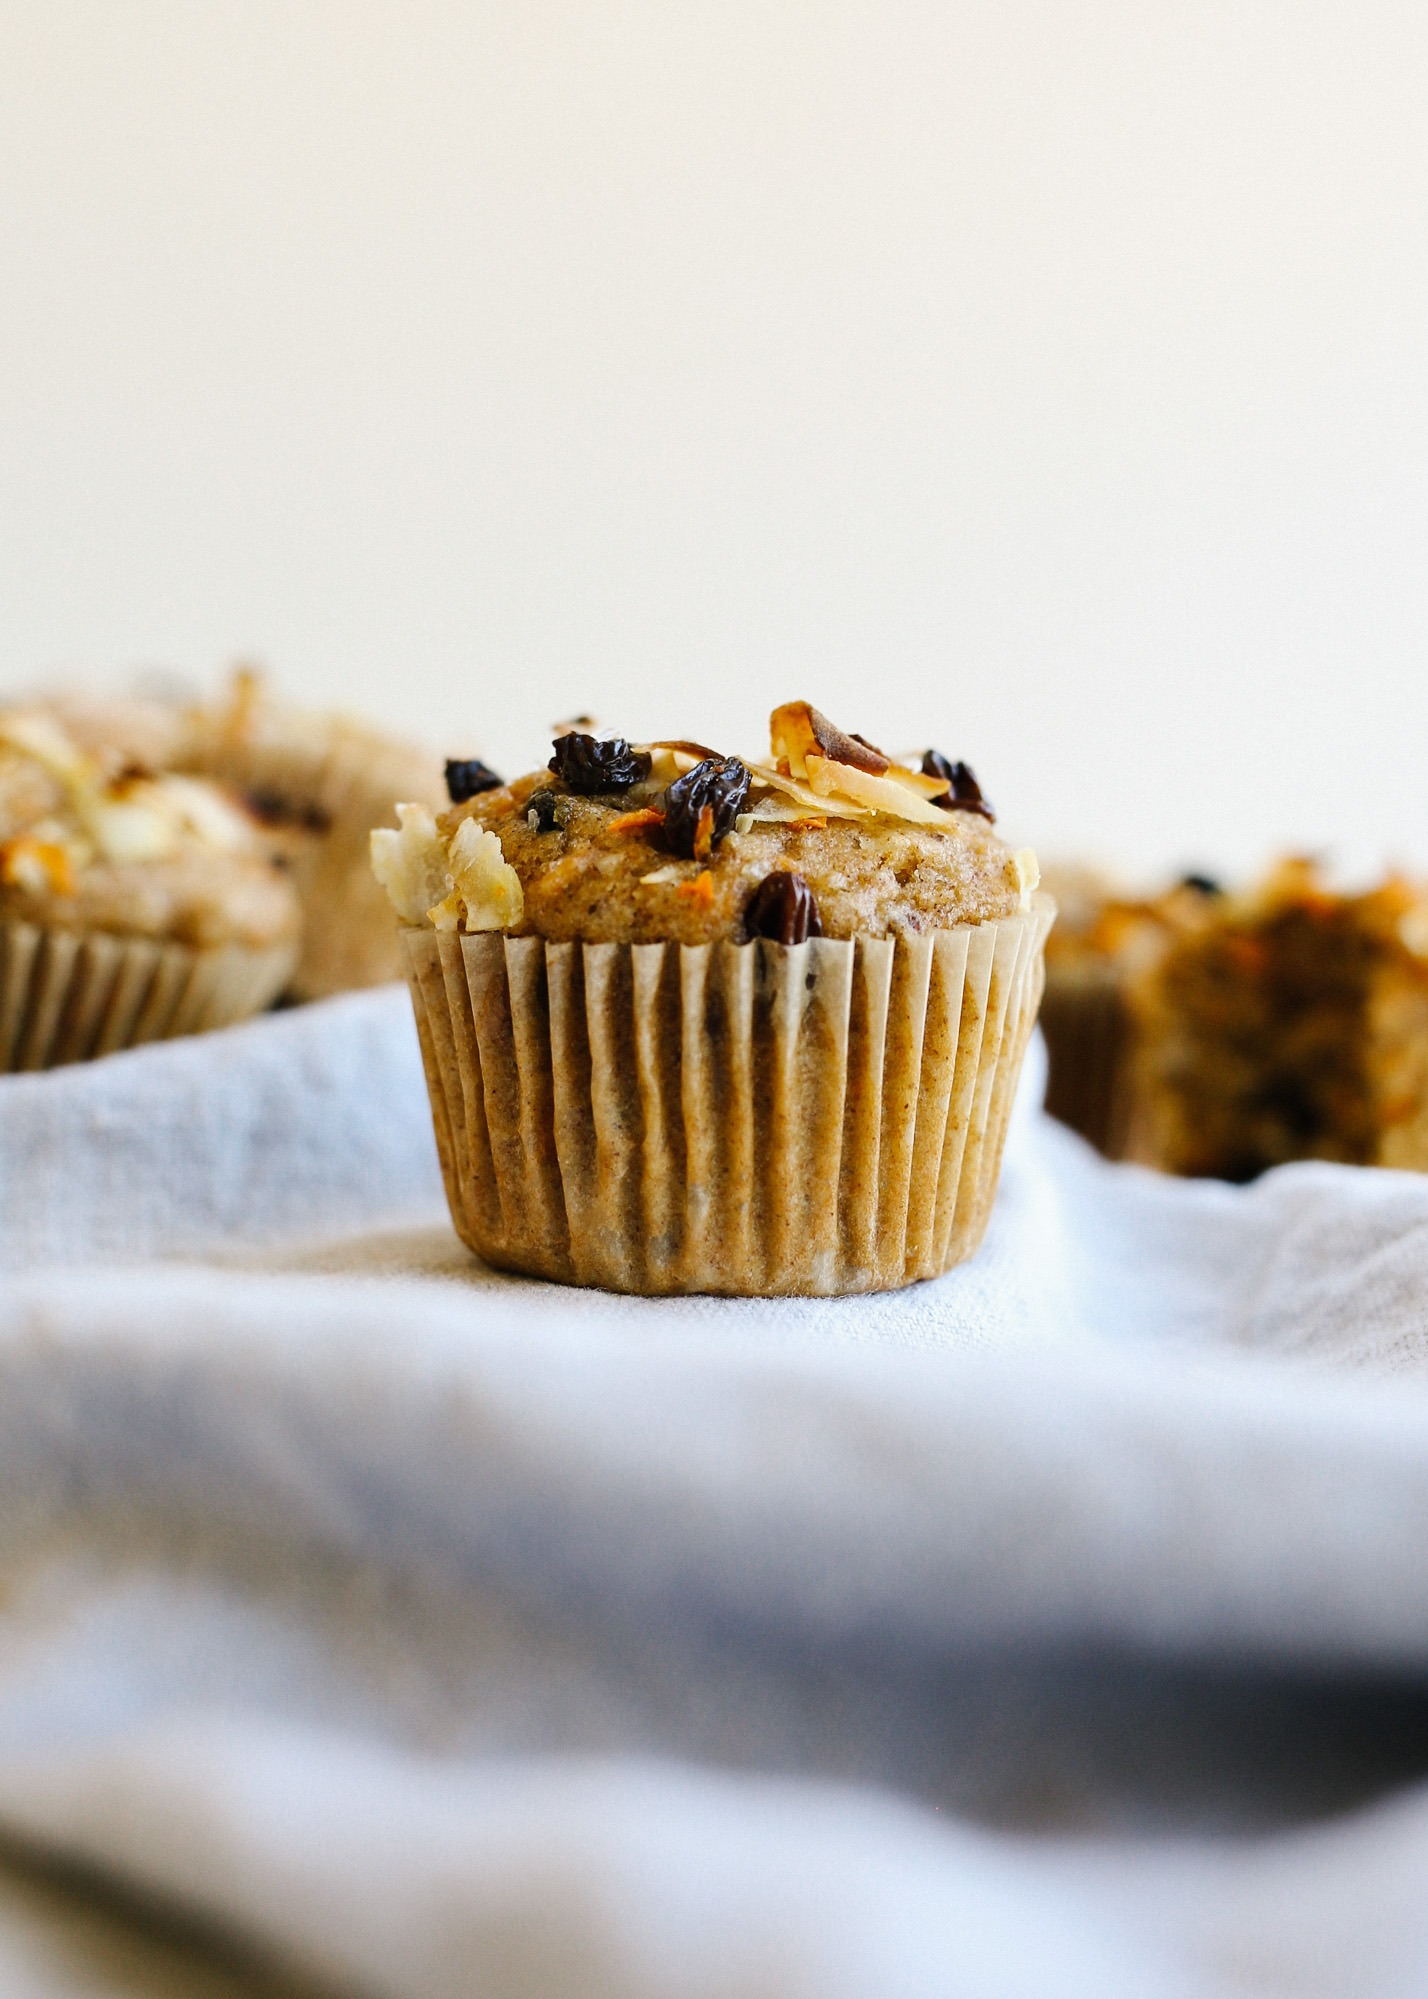 Morning Glory Muffins by Wood and Spoon Blog by Kate Wood. These are healthy muffins with natural sweeteners, whole wheat flour, and loads of carrots, coconut, and raisins. These are hearty breakfast pastries and afternoon snacks and make great little energy bites that are simple, make ahead, and easy to freeze. Learn more about the recipe on thewoodandspoon.com